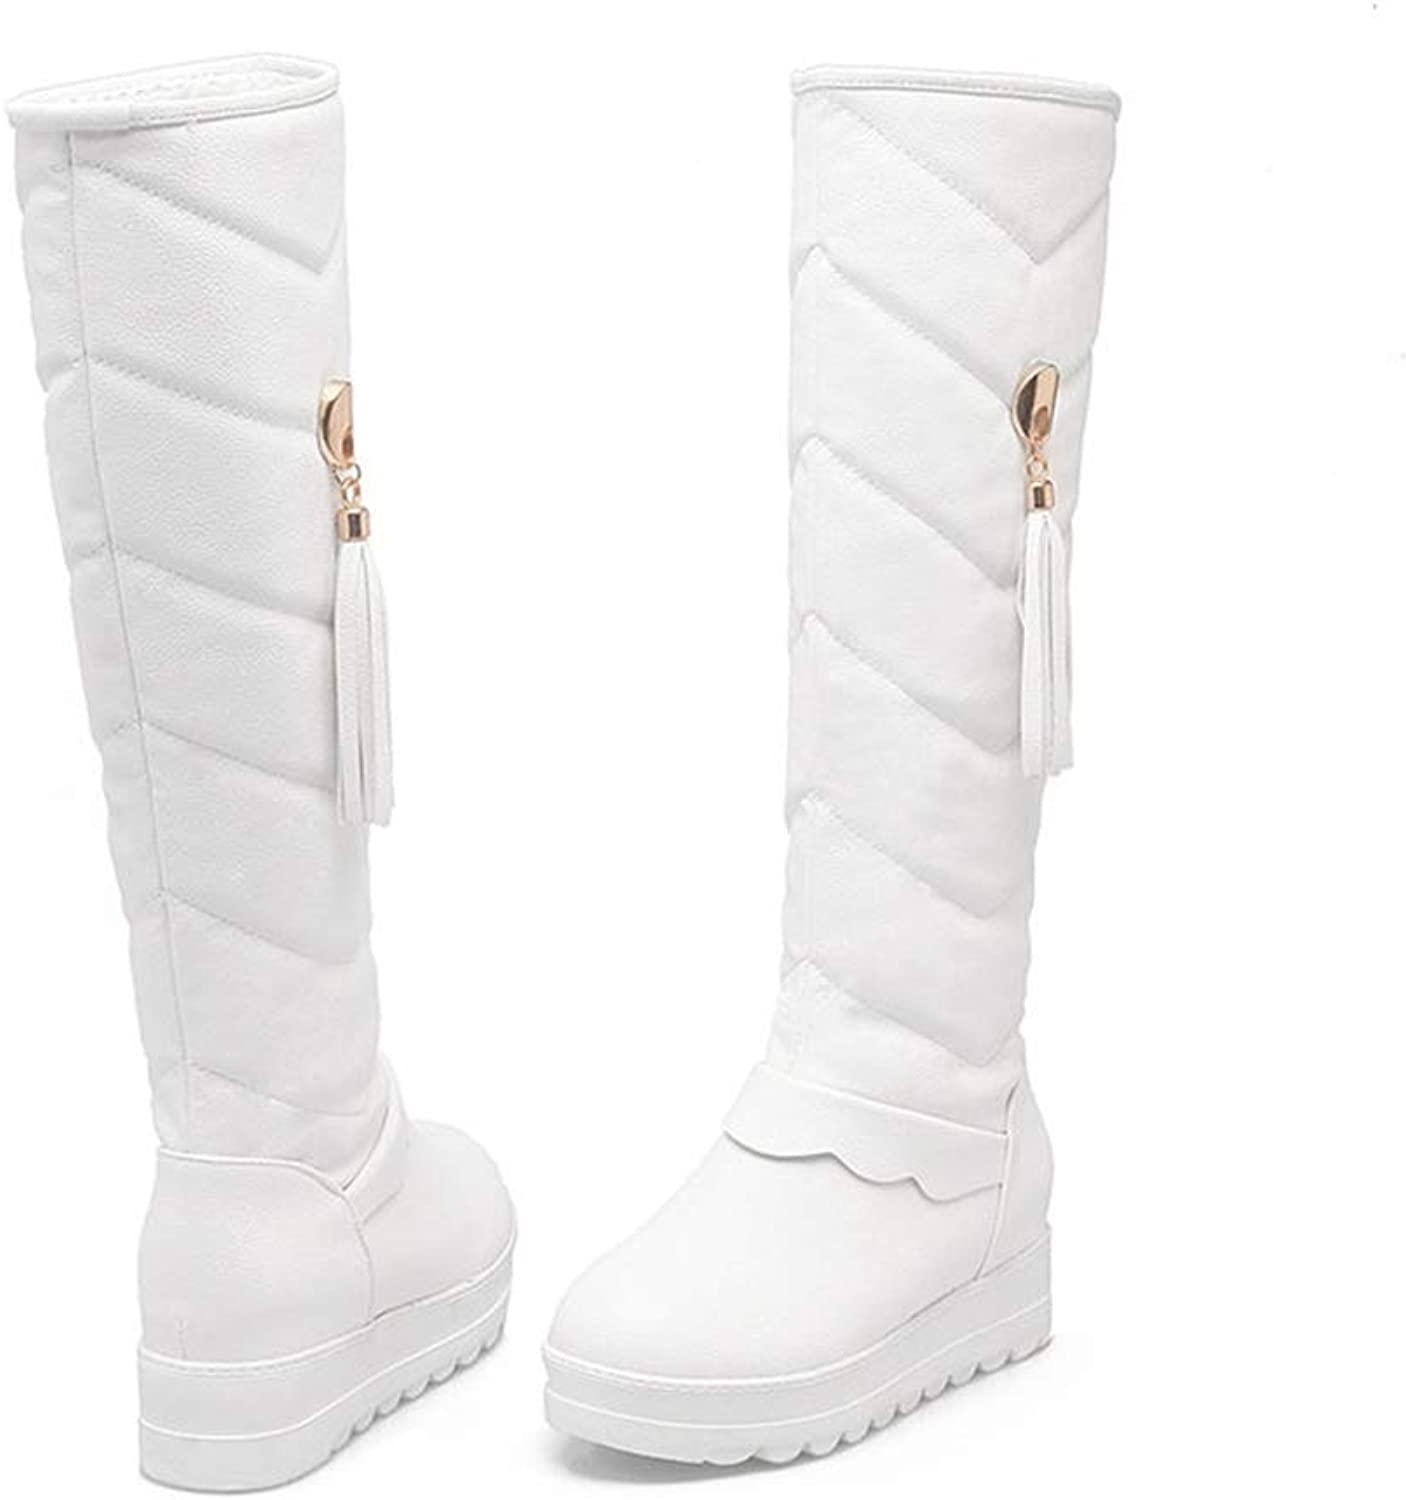 T-JULY Winter Women Shorts Mid Calf Boots Comfortable Sweet Fringe Pearl Round Toe Boots